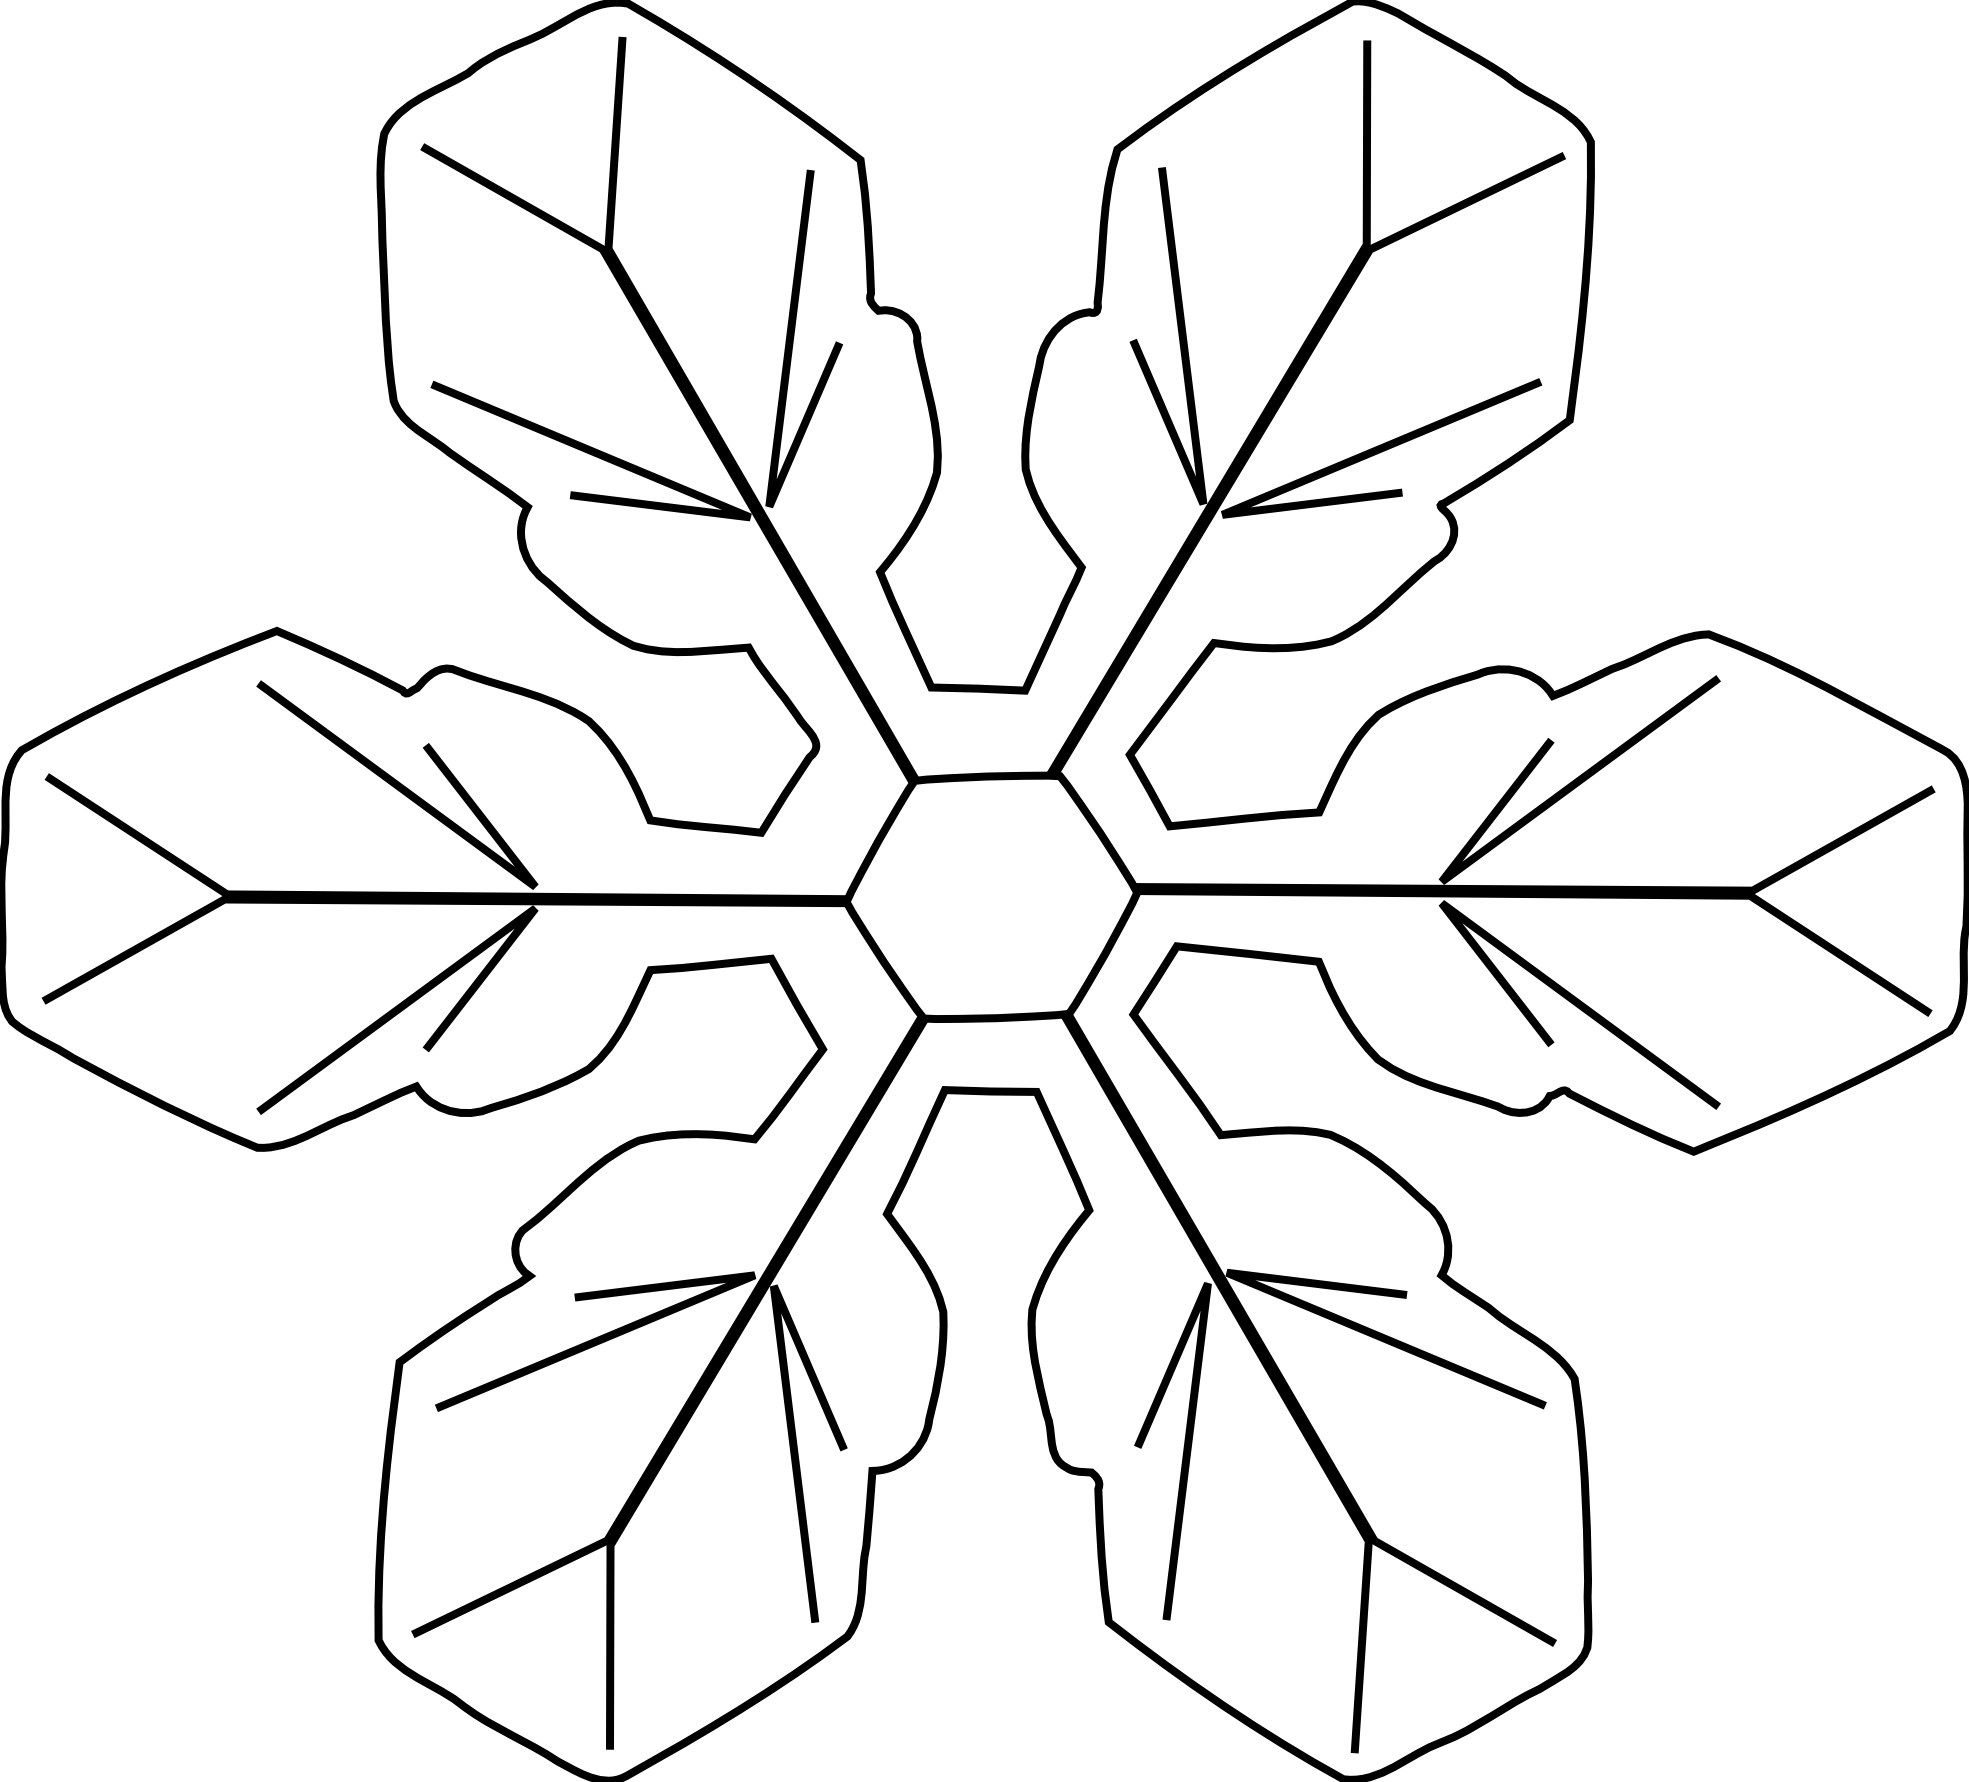 Christmas snowflake clipart black and white jpg library library White Snowflake Clipart Png | Clipart Panda - Free Clipart Images jpg library library